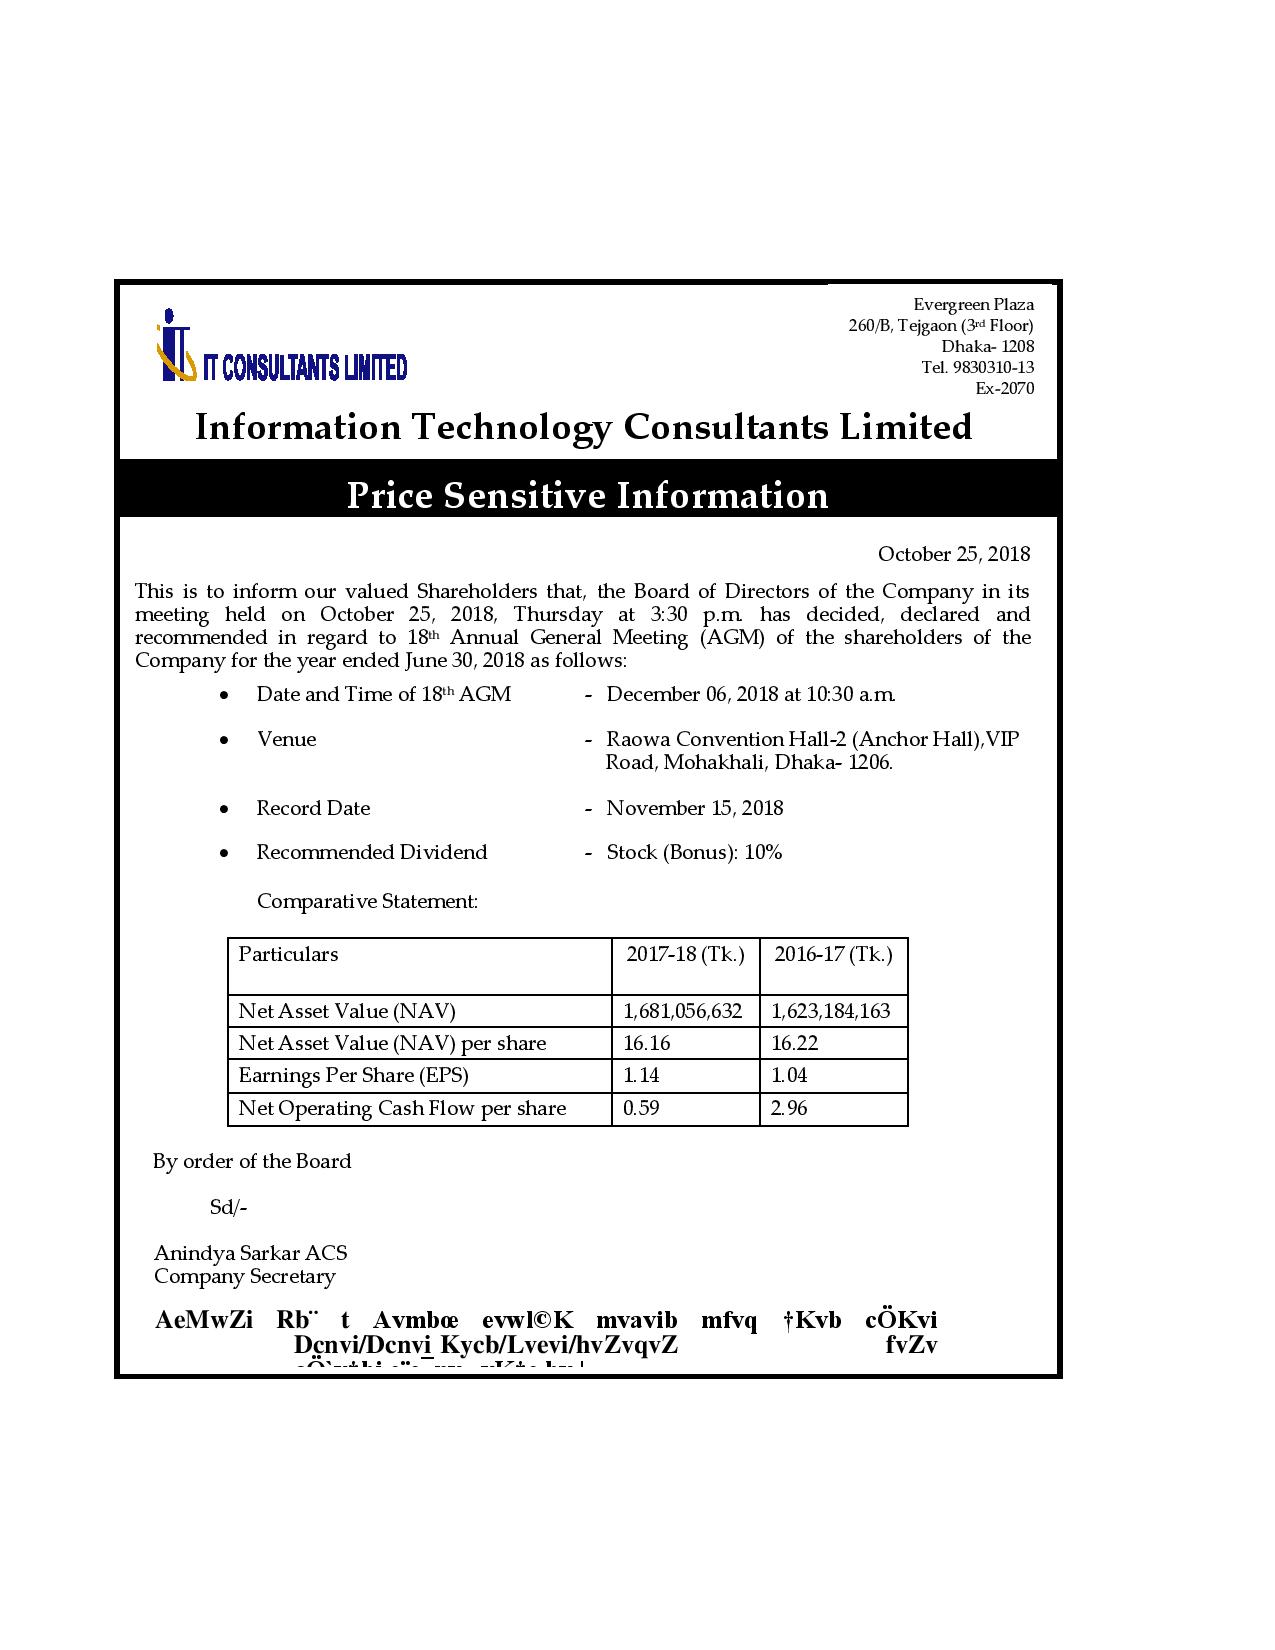 PSI_of_IT_Consultants_Ltd.(News_Paper)-page-001